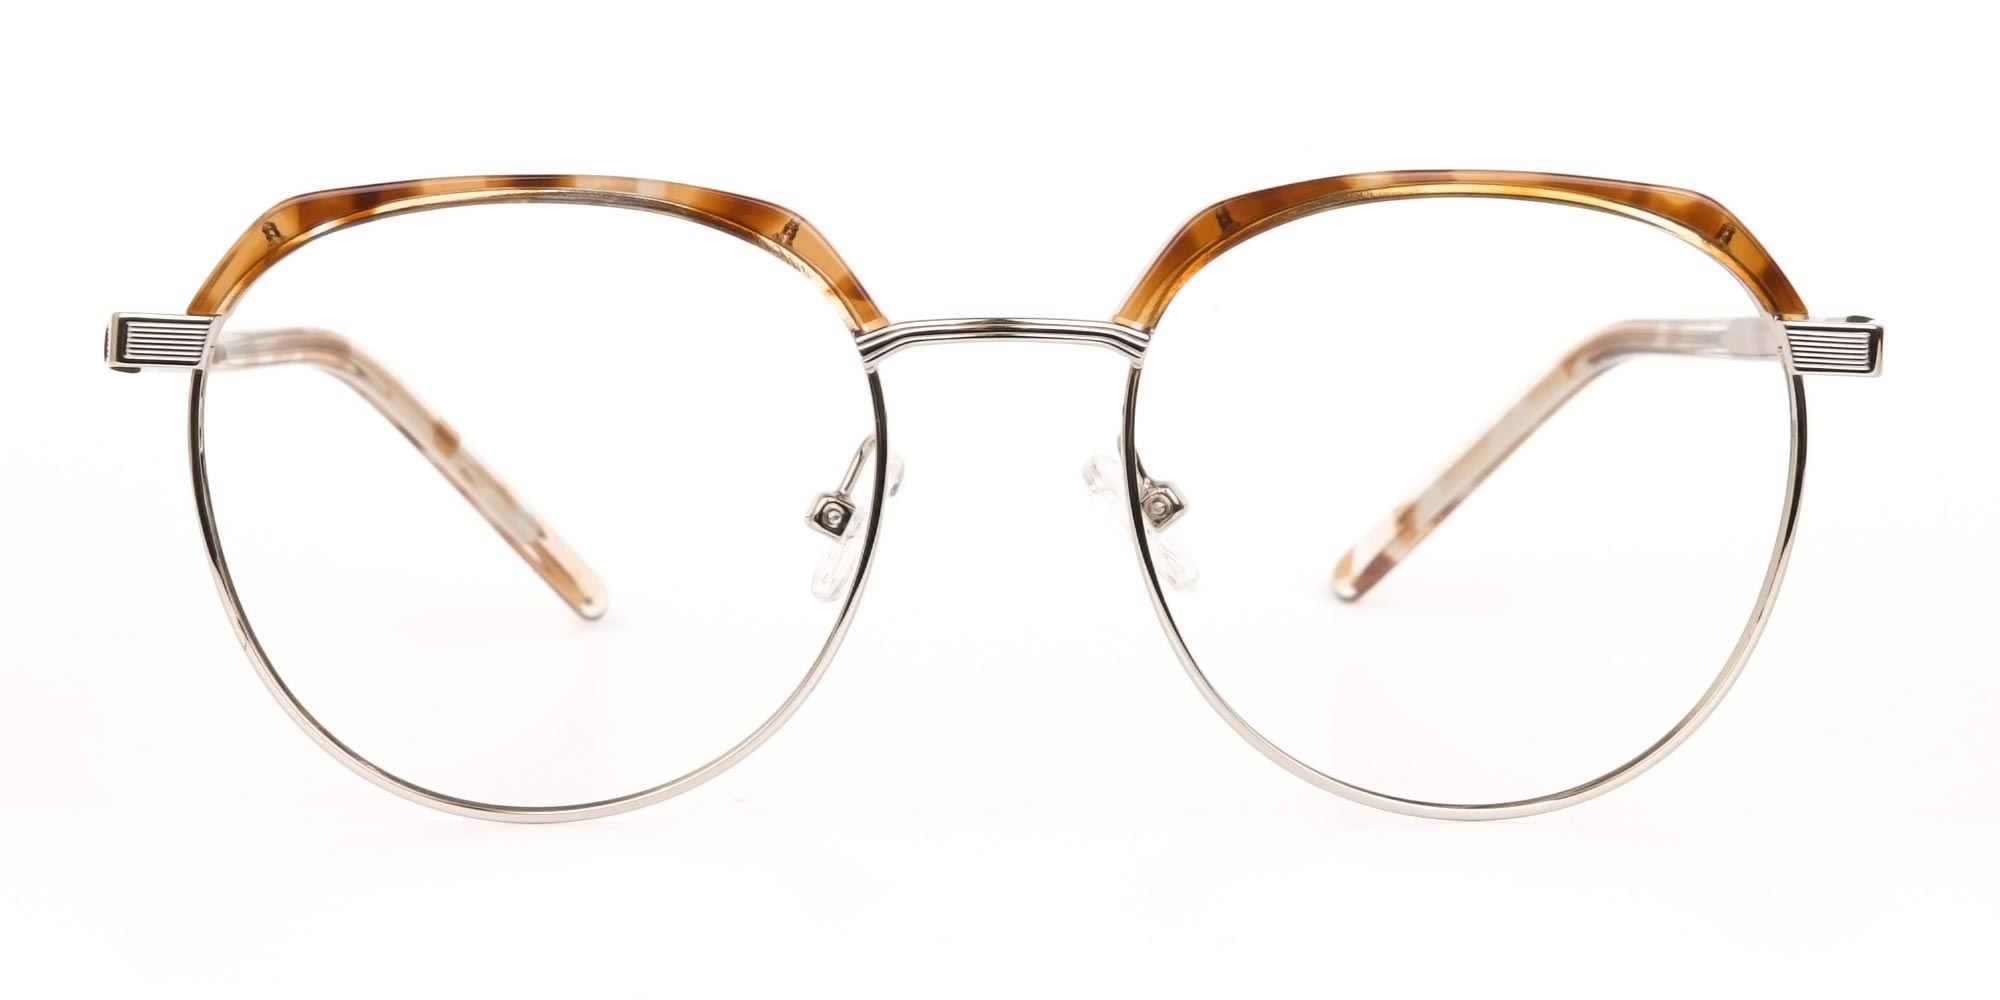 Metal Browline Glasses in Crystal Brown and Tortoiseshell